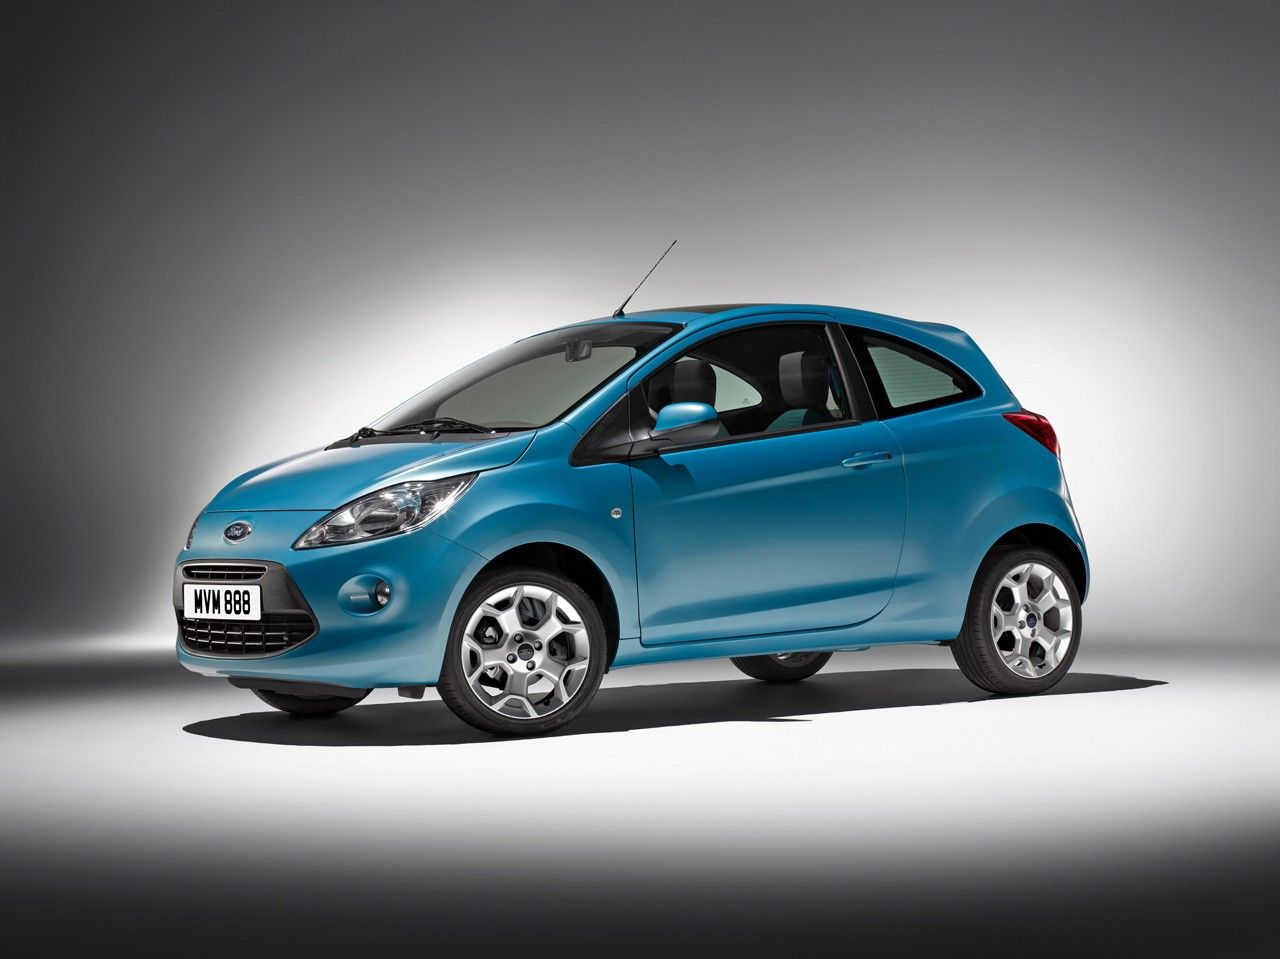 Small Modern Car From Ford Ka 2009 Cars Gallery New